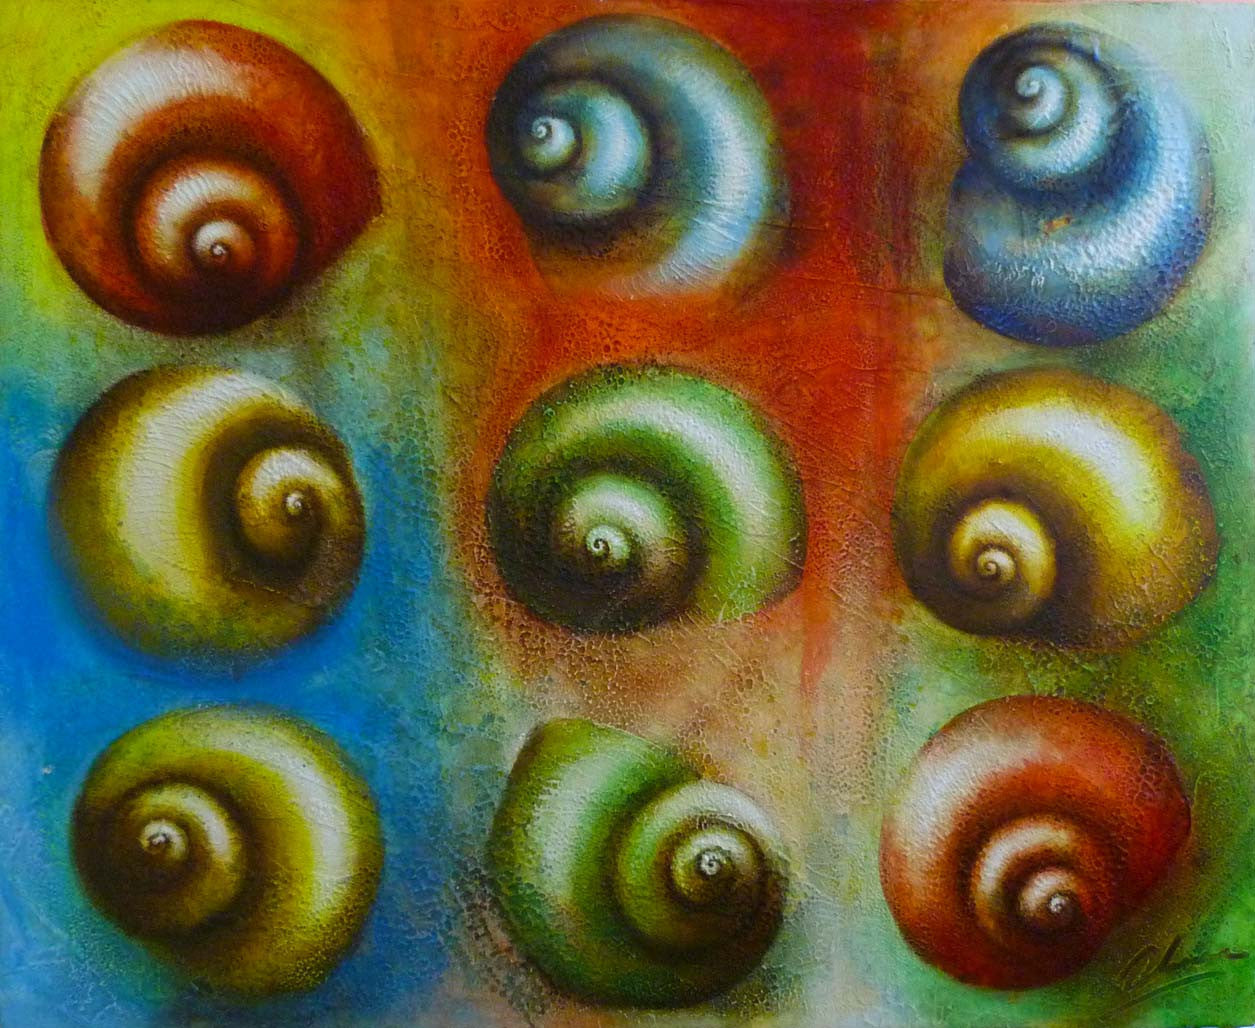 SPIRALS 1 Edras Francisco Rodriguez Original Cuban Art